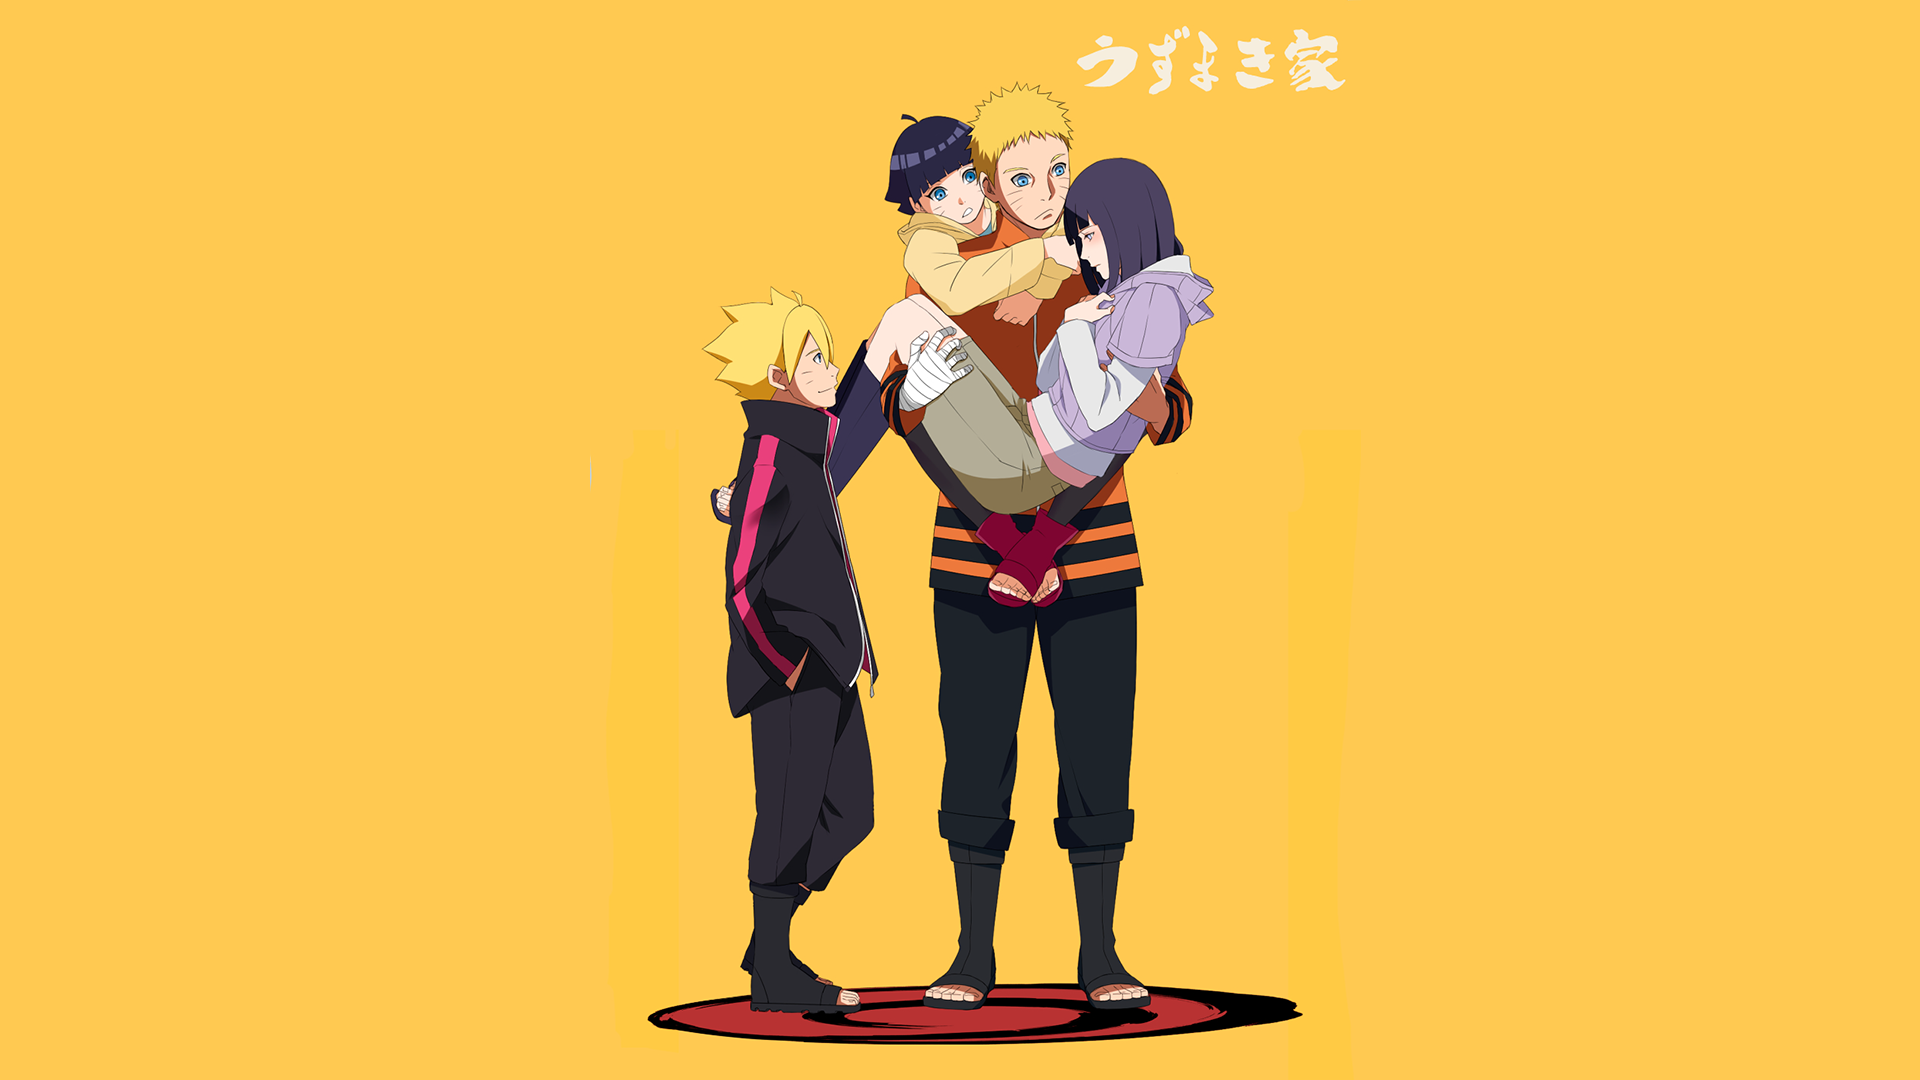 Boruto Hd Wallpaper Background Image 1920x1080 Id 726927 Wallpaper Abyss